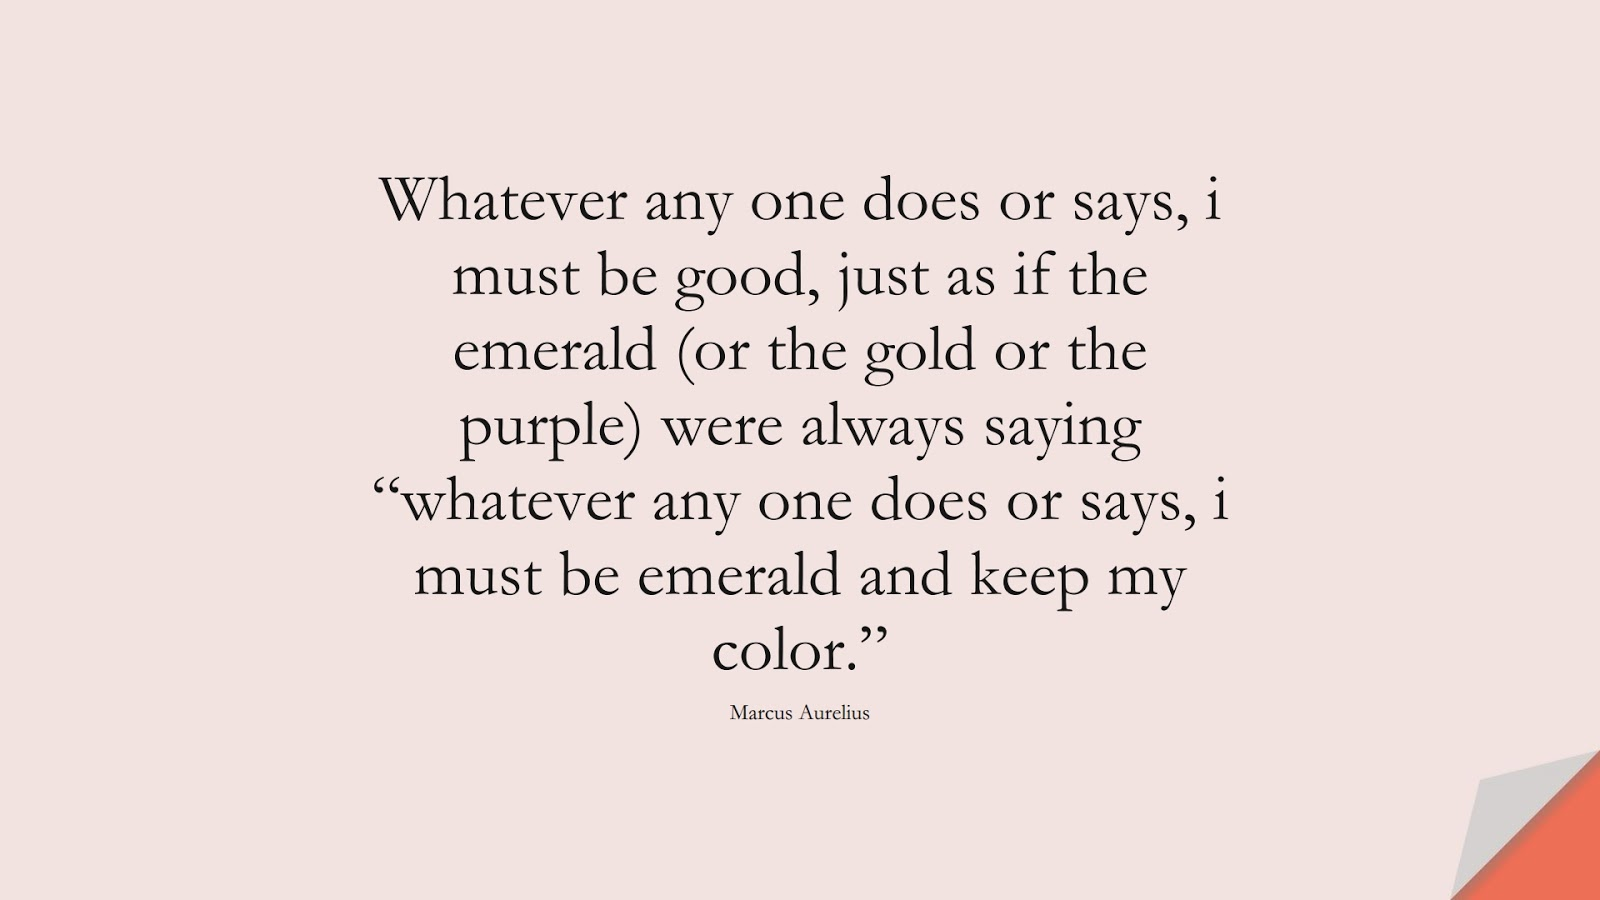 """Whatever any one does or says, i must be good, just as if the emerald (or the gold or the purple) were always saying """"whatever any one does or says, i must be emerald and keep my color."""" (Marcus Aurelius);  #MarcusAureliusQuotes"""